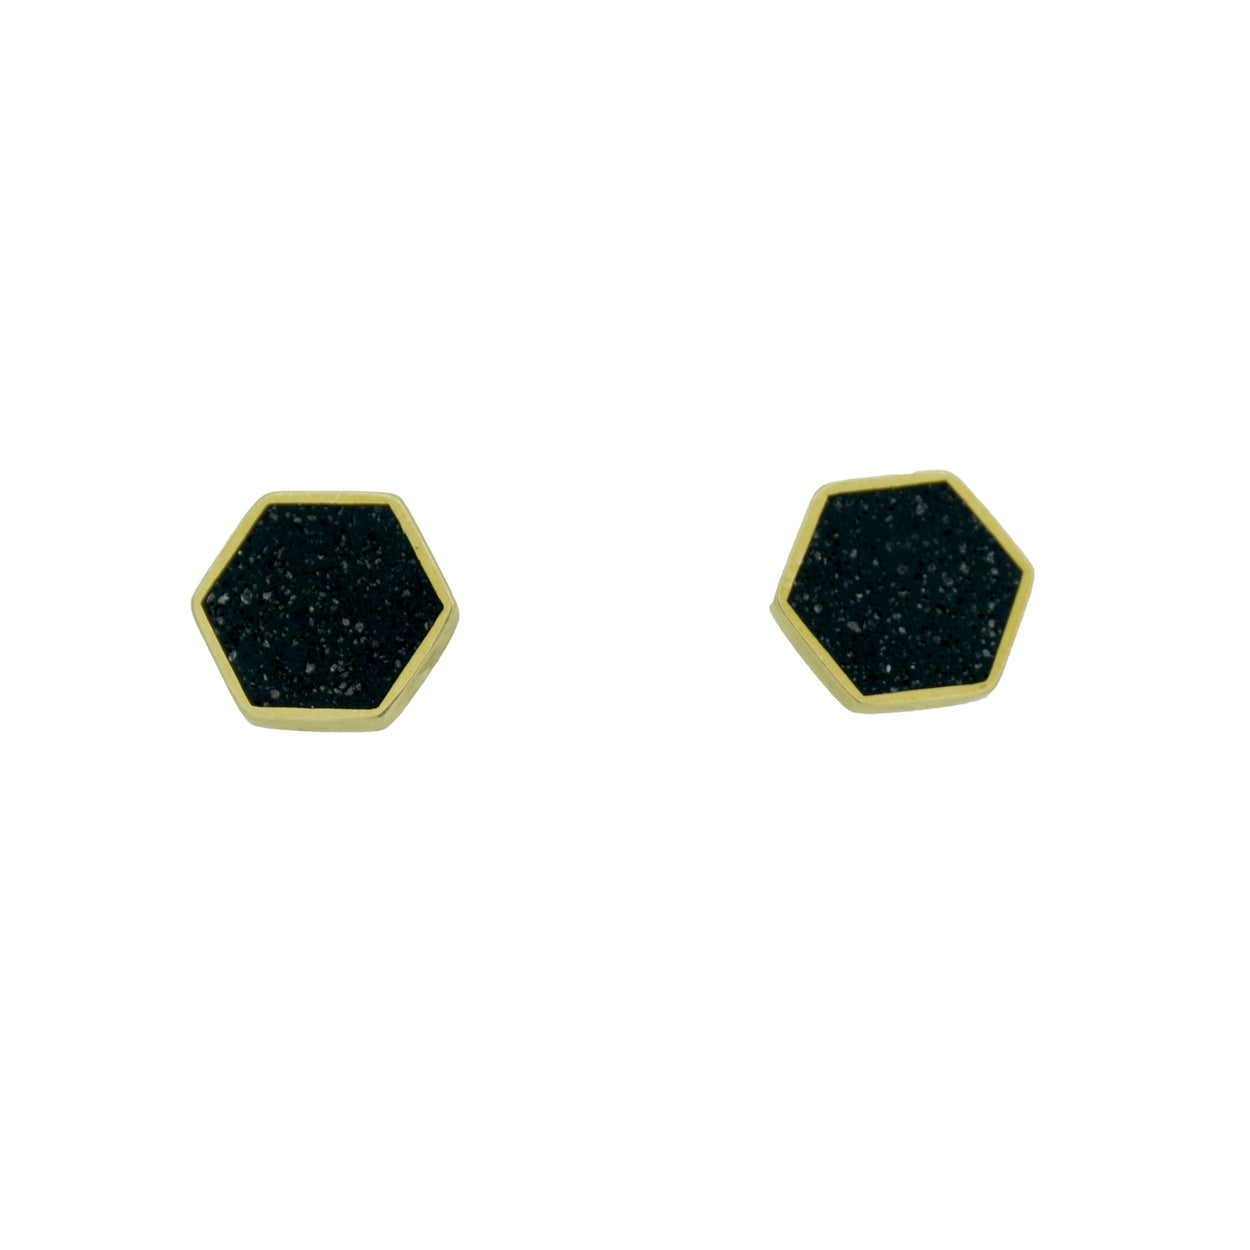 CLUSTER STUD EARRINGS BRASS + CONCRETE Black